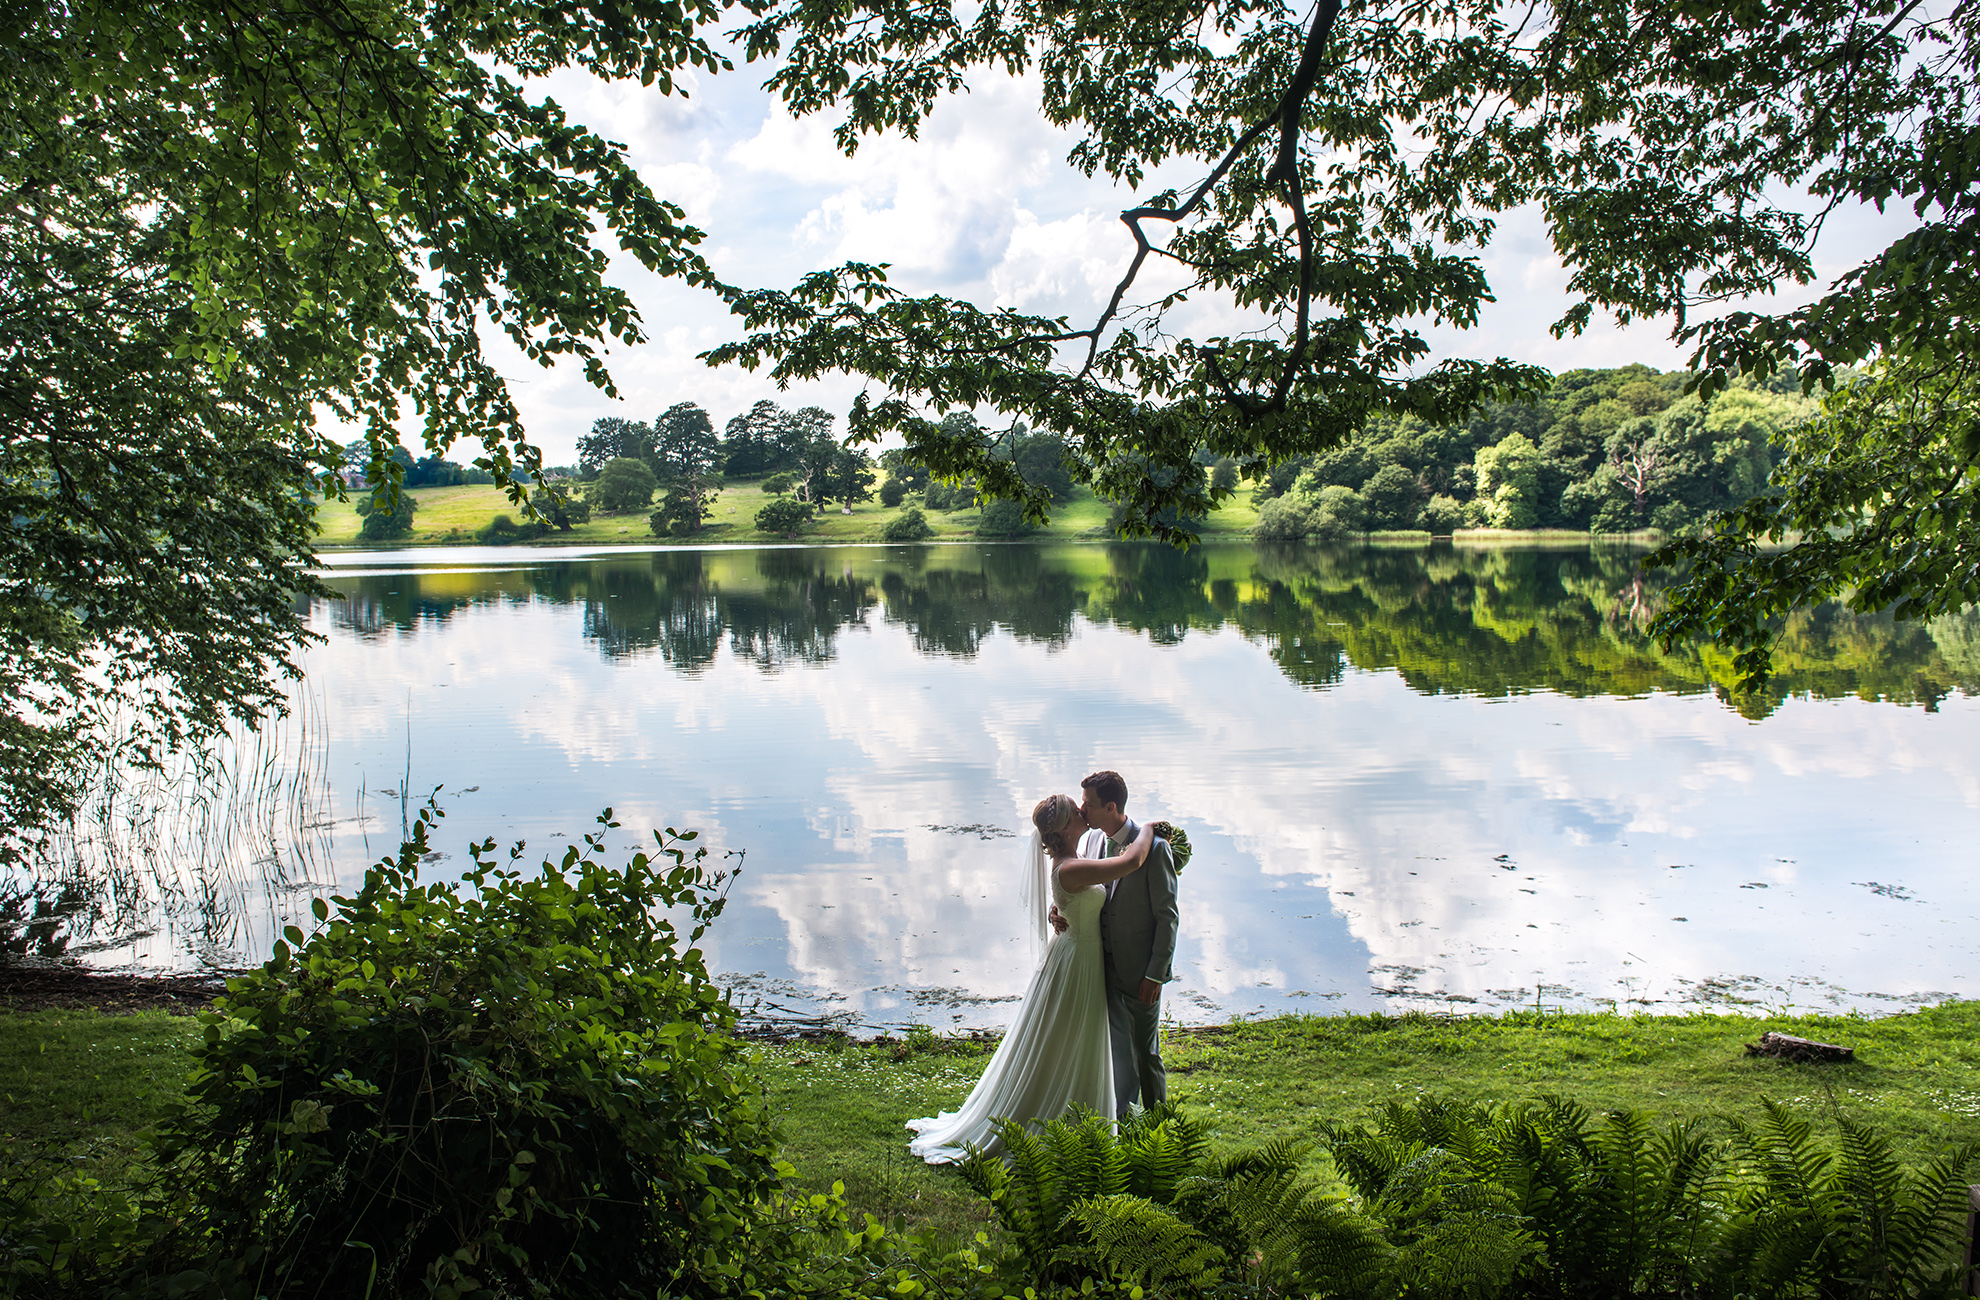 The bride and groom share a kiss by the mere at Combermere Abbey wedding venue in Cheshire